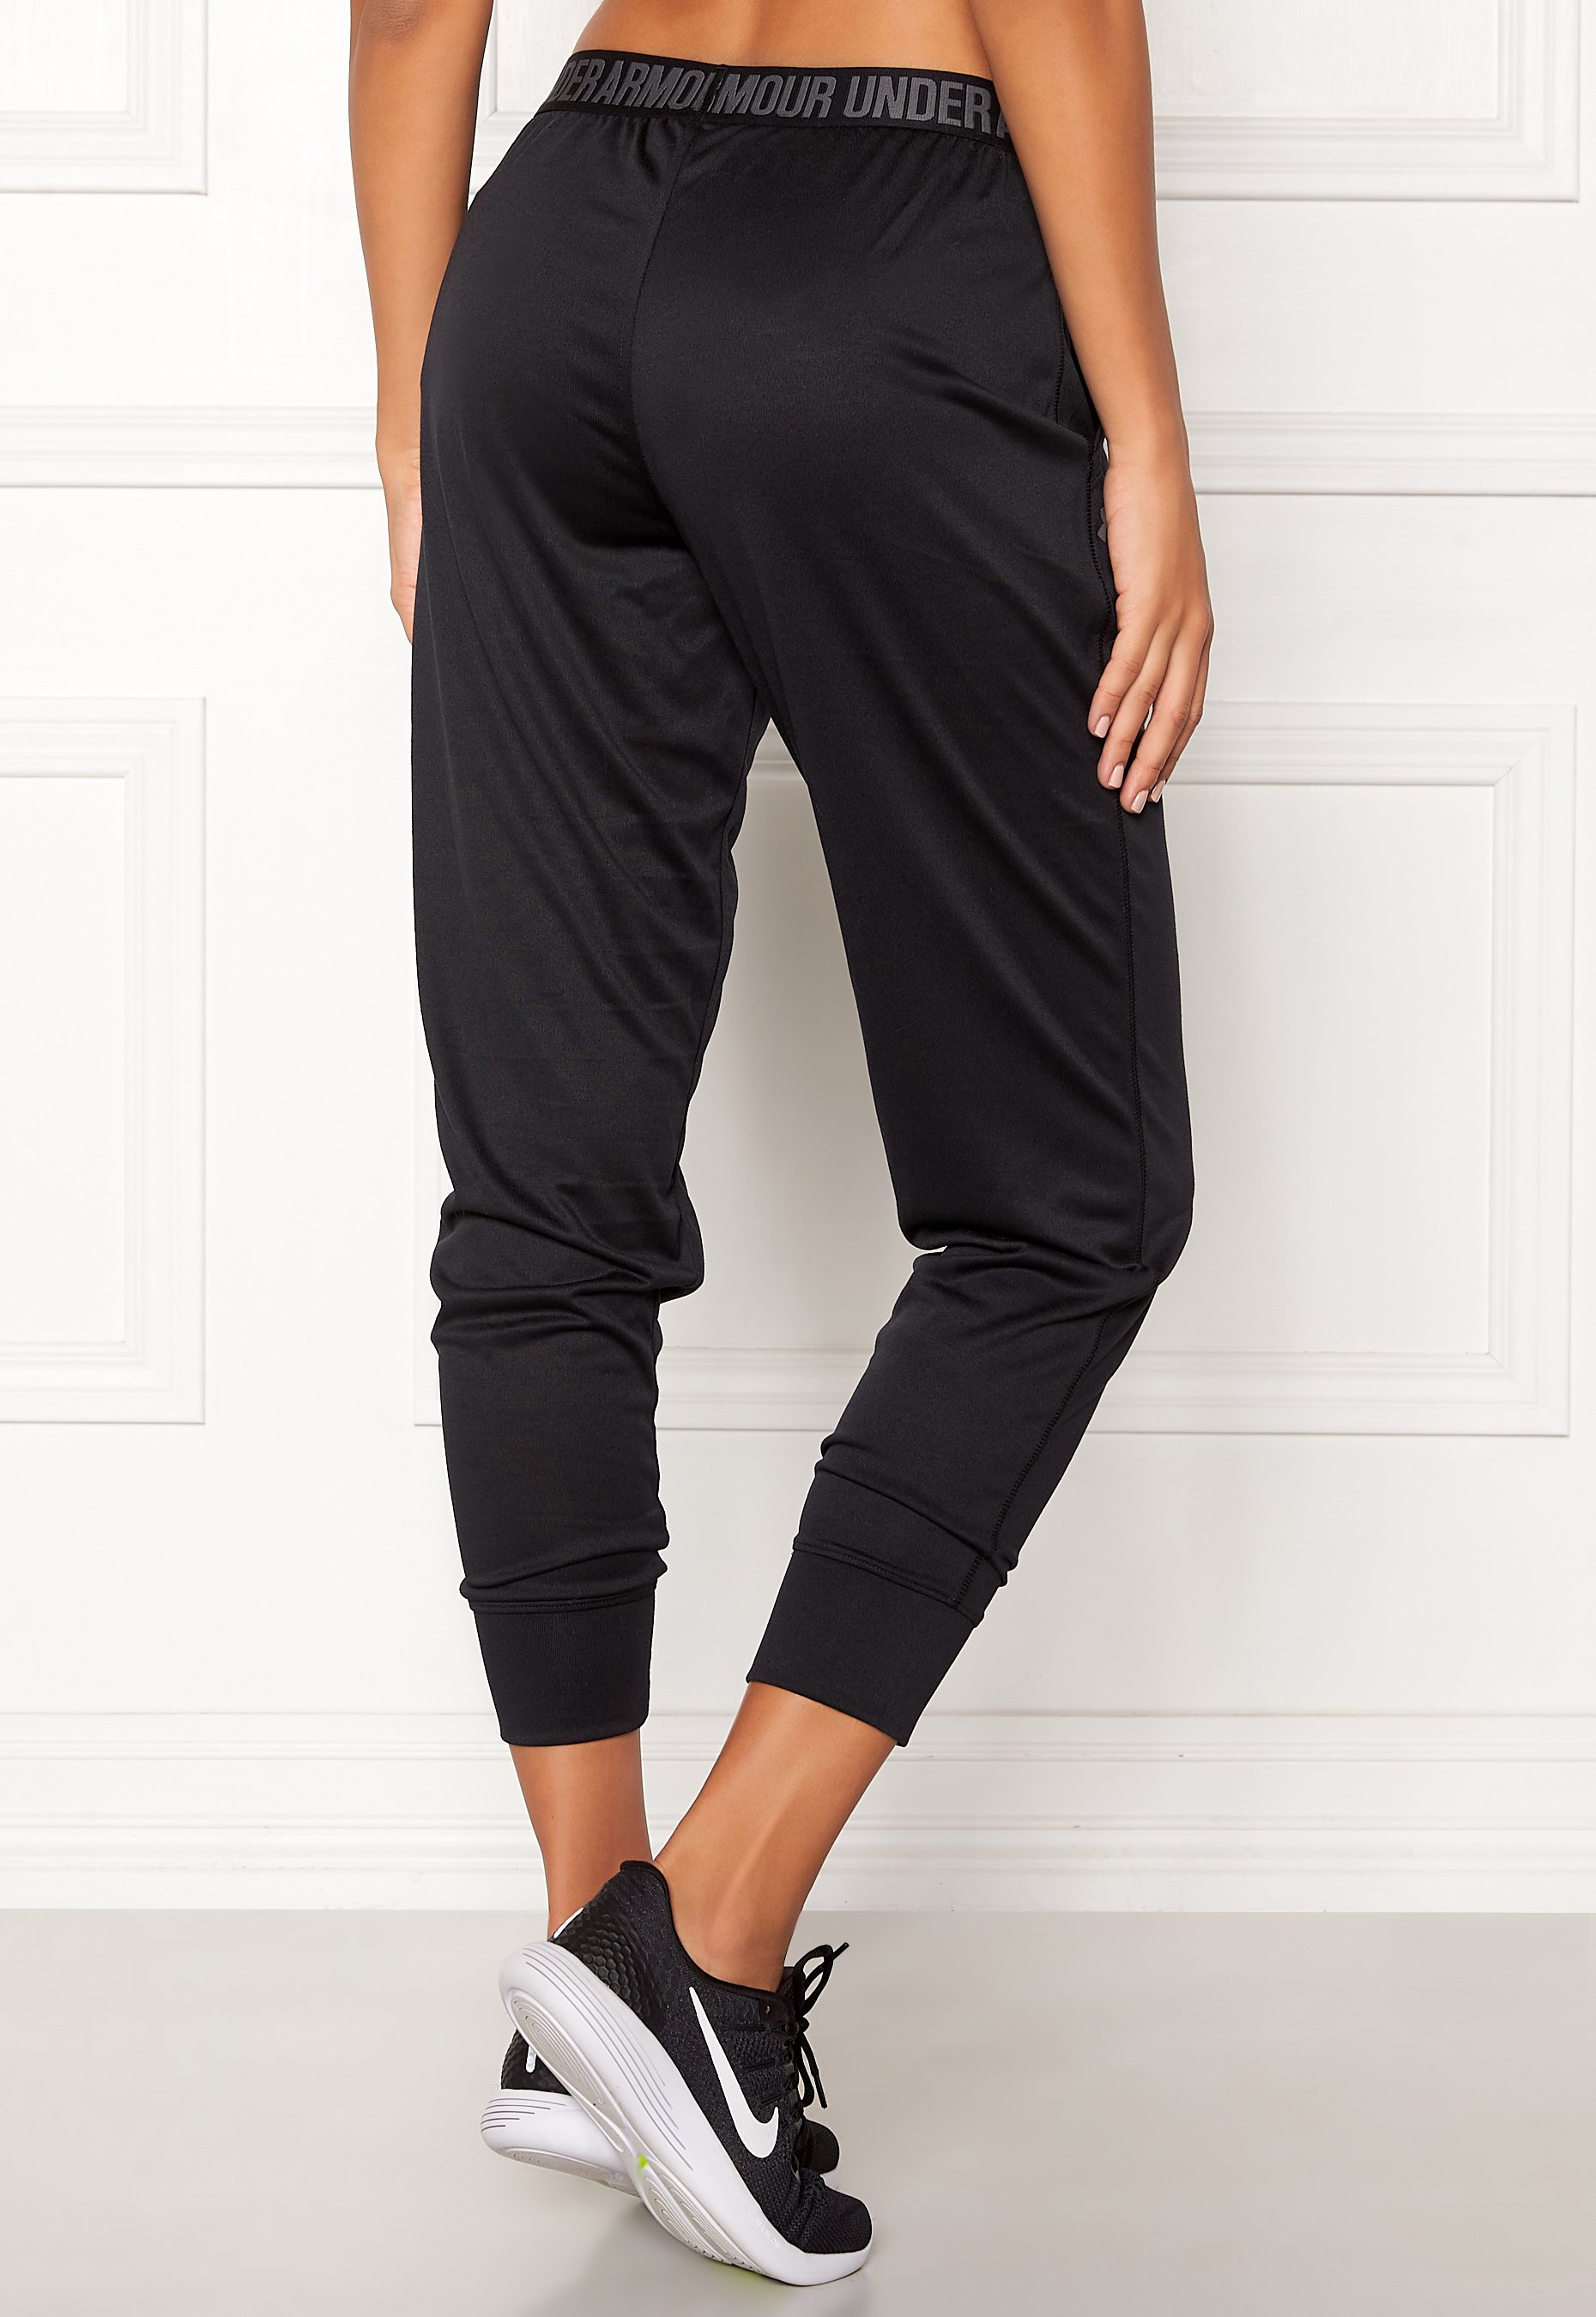 54472bdb78d Under Armour Play Up Pant Black - Bubbleroom